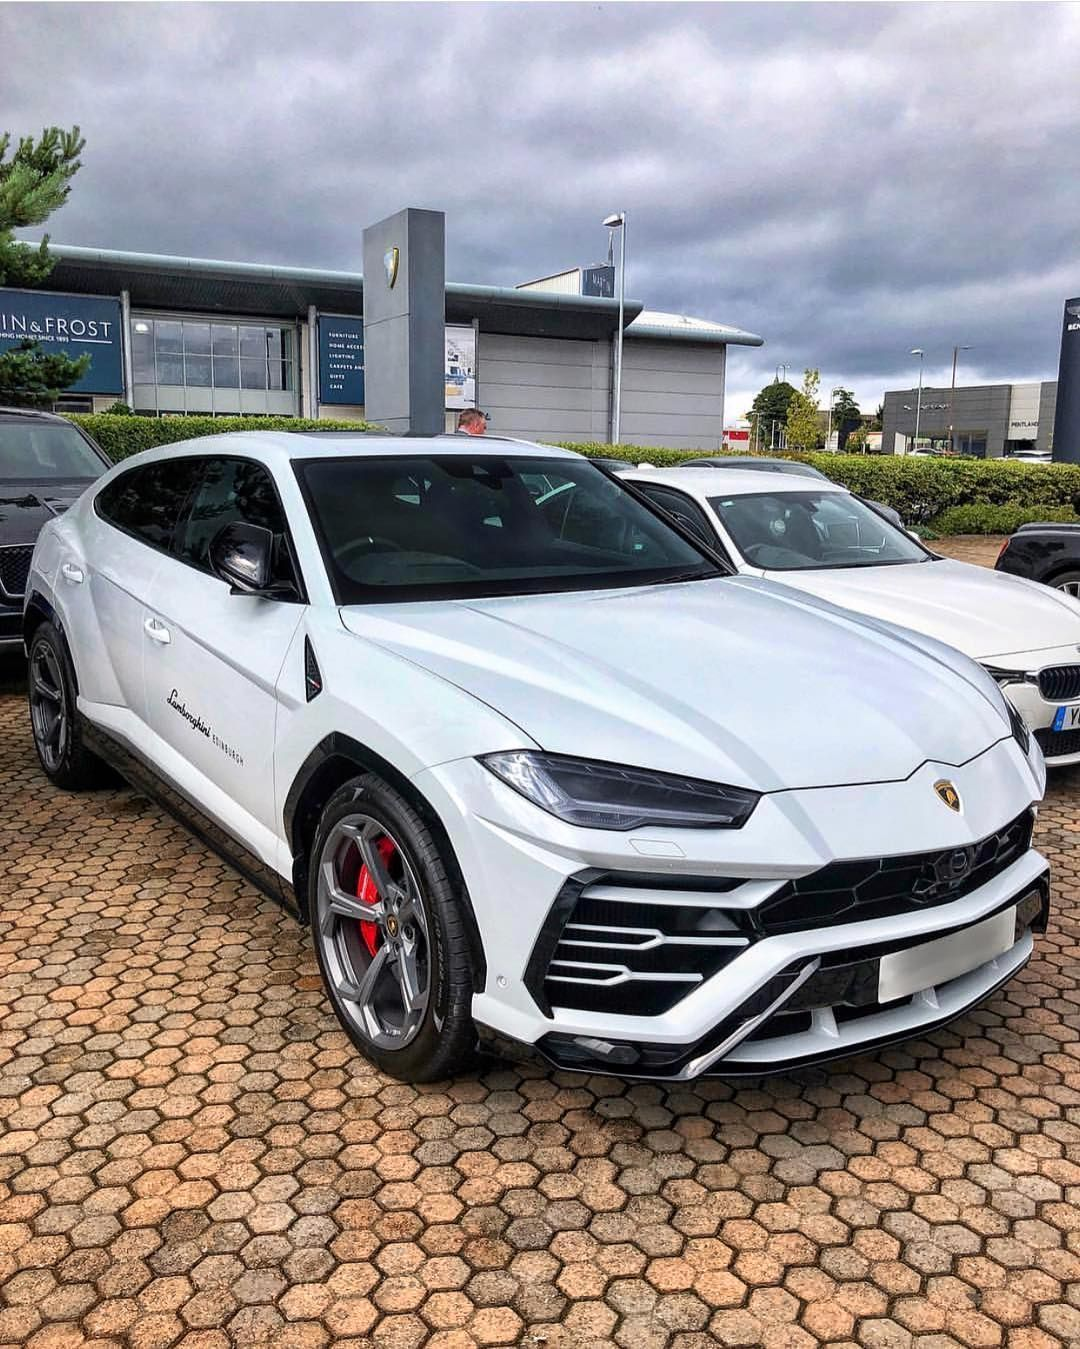 Luxury And Fastest Cars In The World This Is Result Of Extraordinary Human Work That Have A Sporty Design At Very Fast Sds